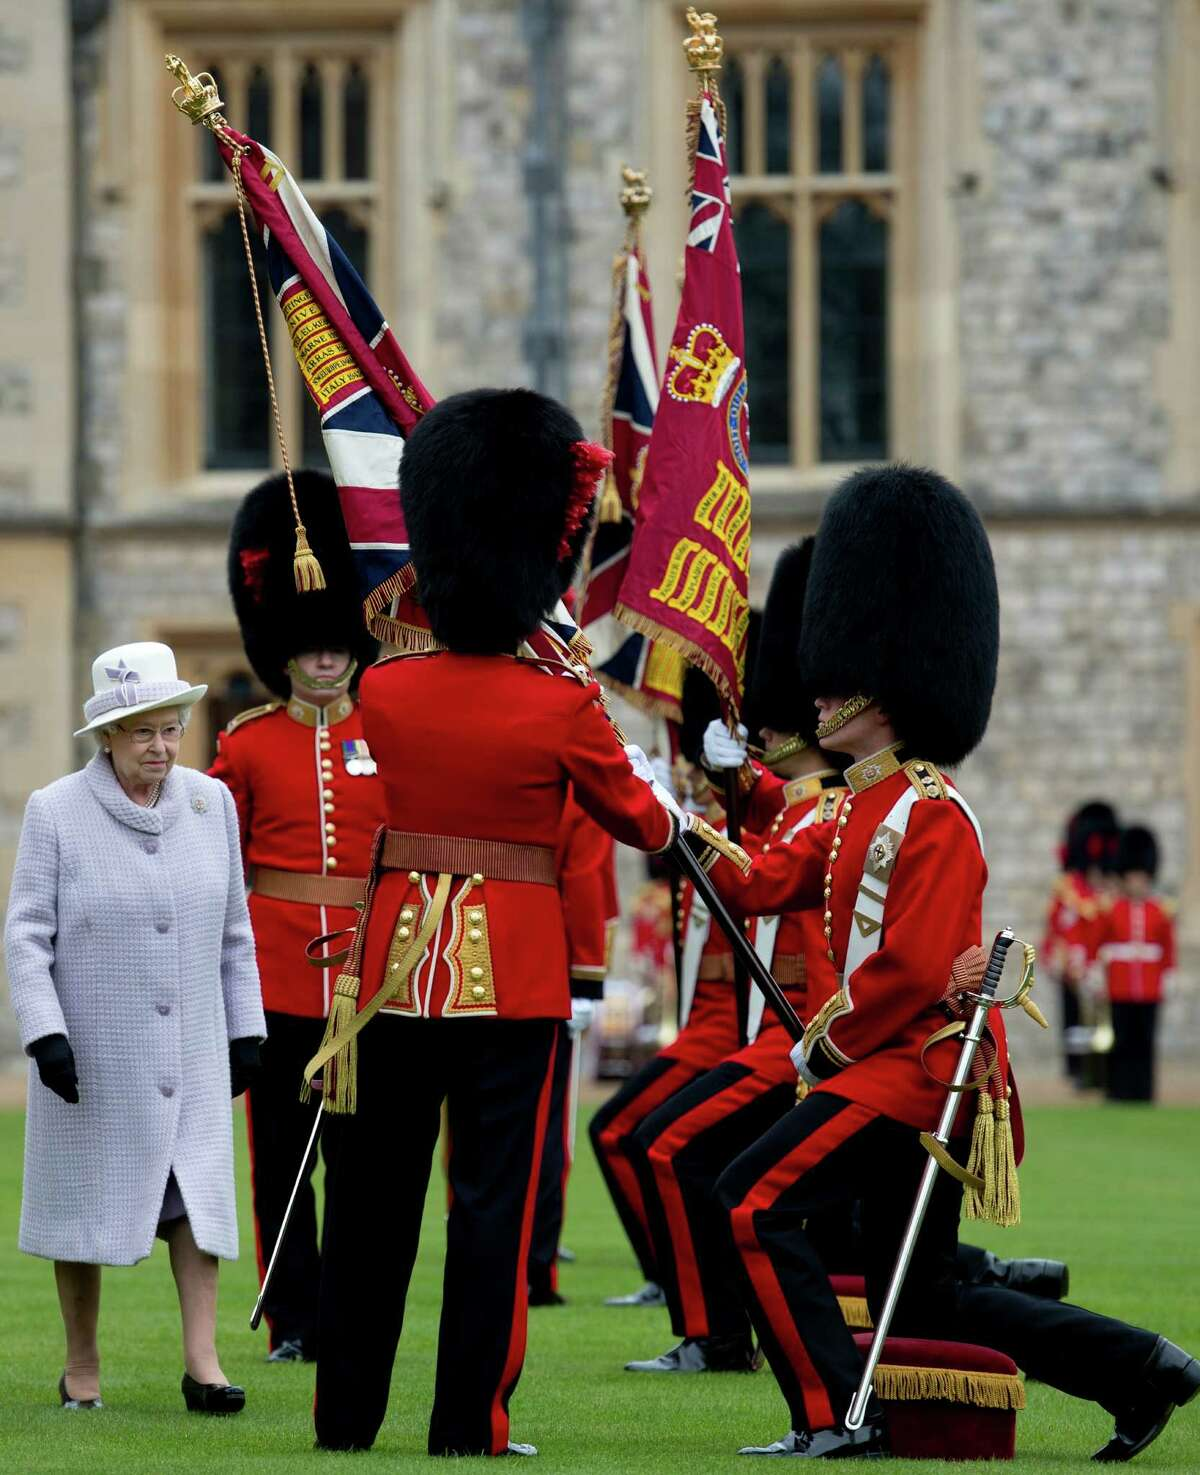 Britain's Queen Elizabeth II (L) presents New Colours to the 1st Battalion and No. 7 Company the Coldstream Guards at Windsor Castle, Berkshire, west of London, on May 3, 2012. The Queen presented New Colours to the 1st Battalion and No. 7 Company of the Coldstream Guards and then inspected the Parade. The Coldstream Guards, the oldest regiment in the British Army, will form part of the guard for Trooping the Colour in honour the the Queen's birthday in June following which the regiment will prepare for deployment to Afghanistan once more. AFP PHOTO / POOL / BEN STANSALLBEN STANSALL/AFP/GettyImages